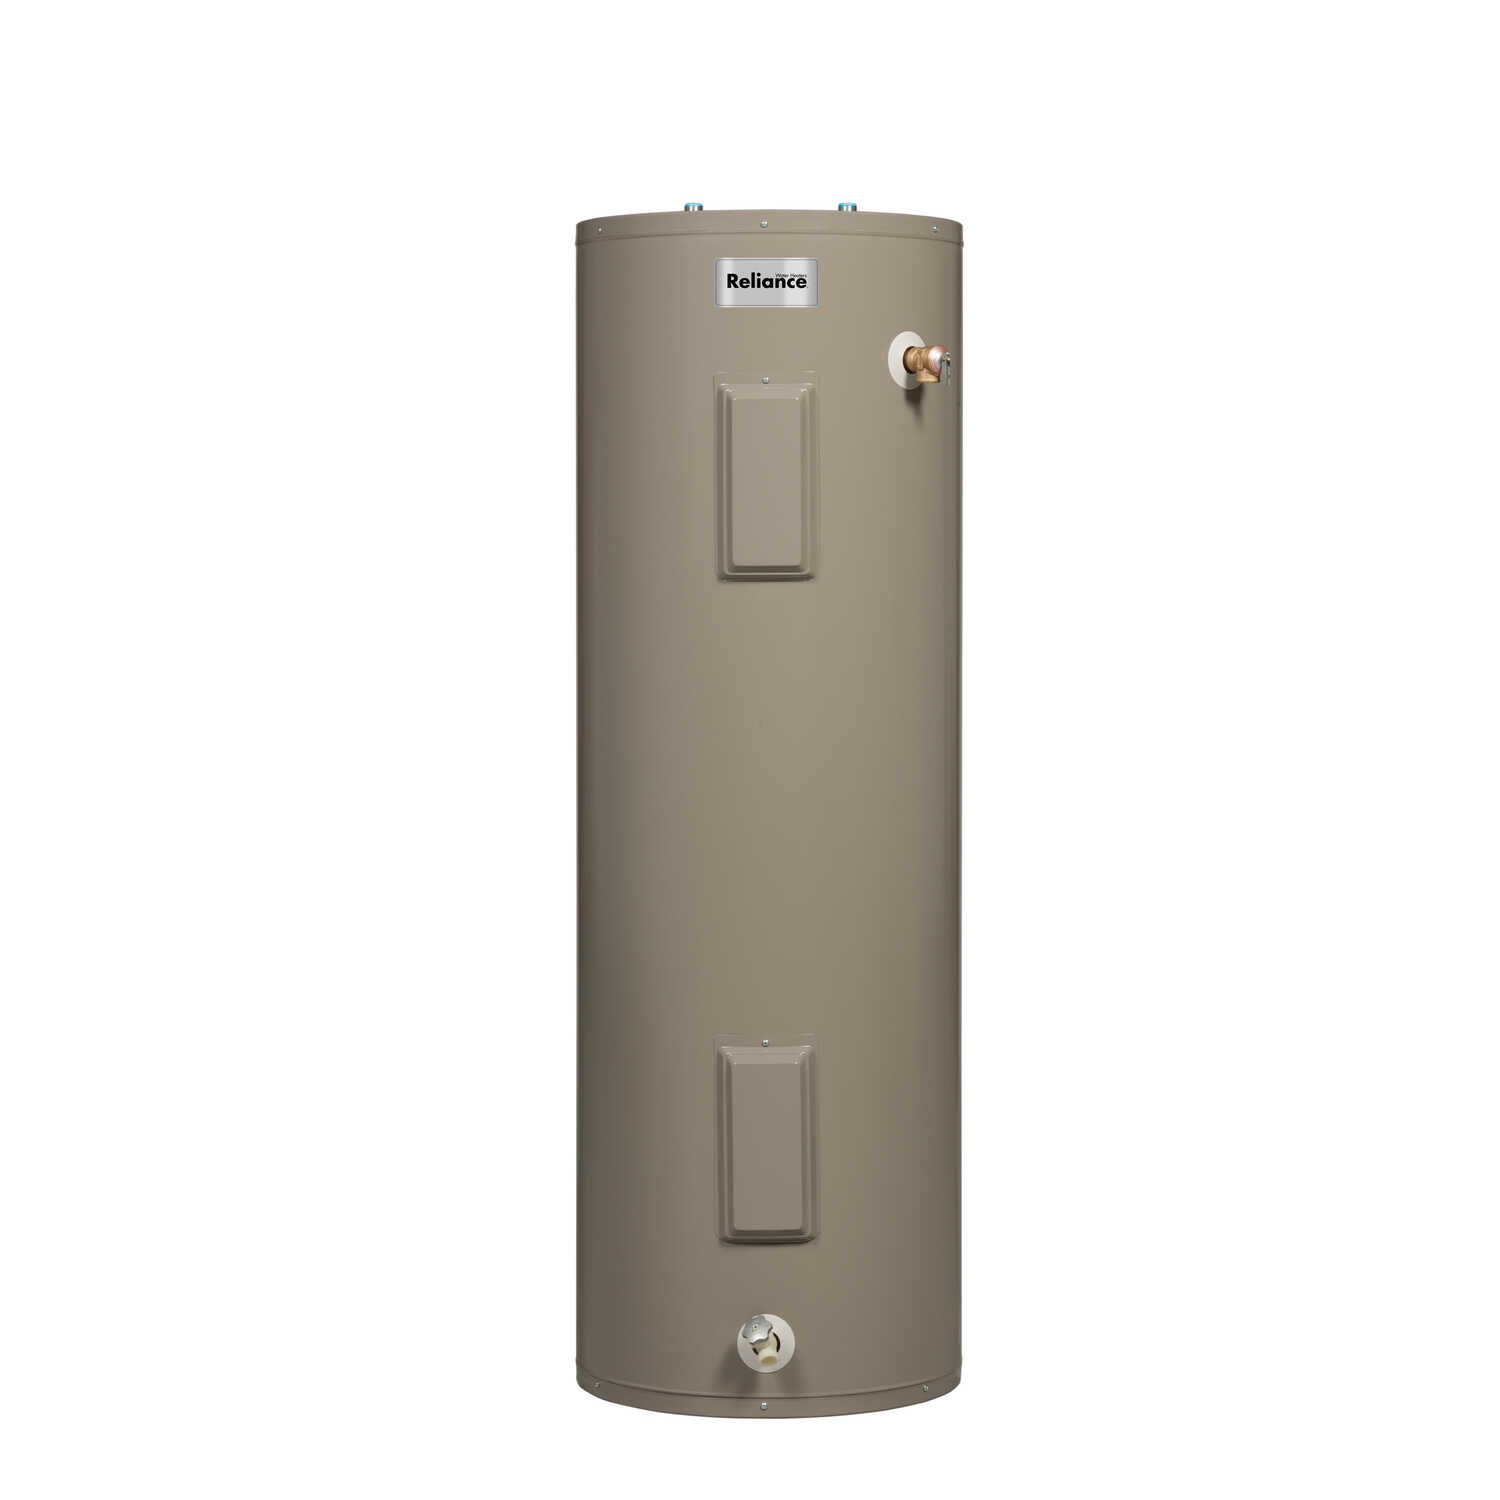 Reliance  Electric  Water Heater  60-1/2 in. H x 20-1/2 in. W x 20-1/2 in. L 50 gal.